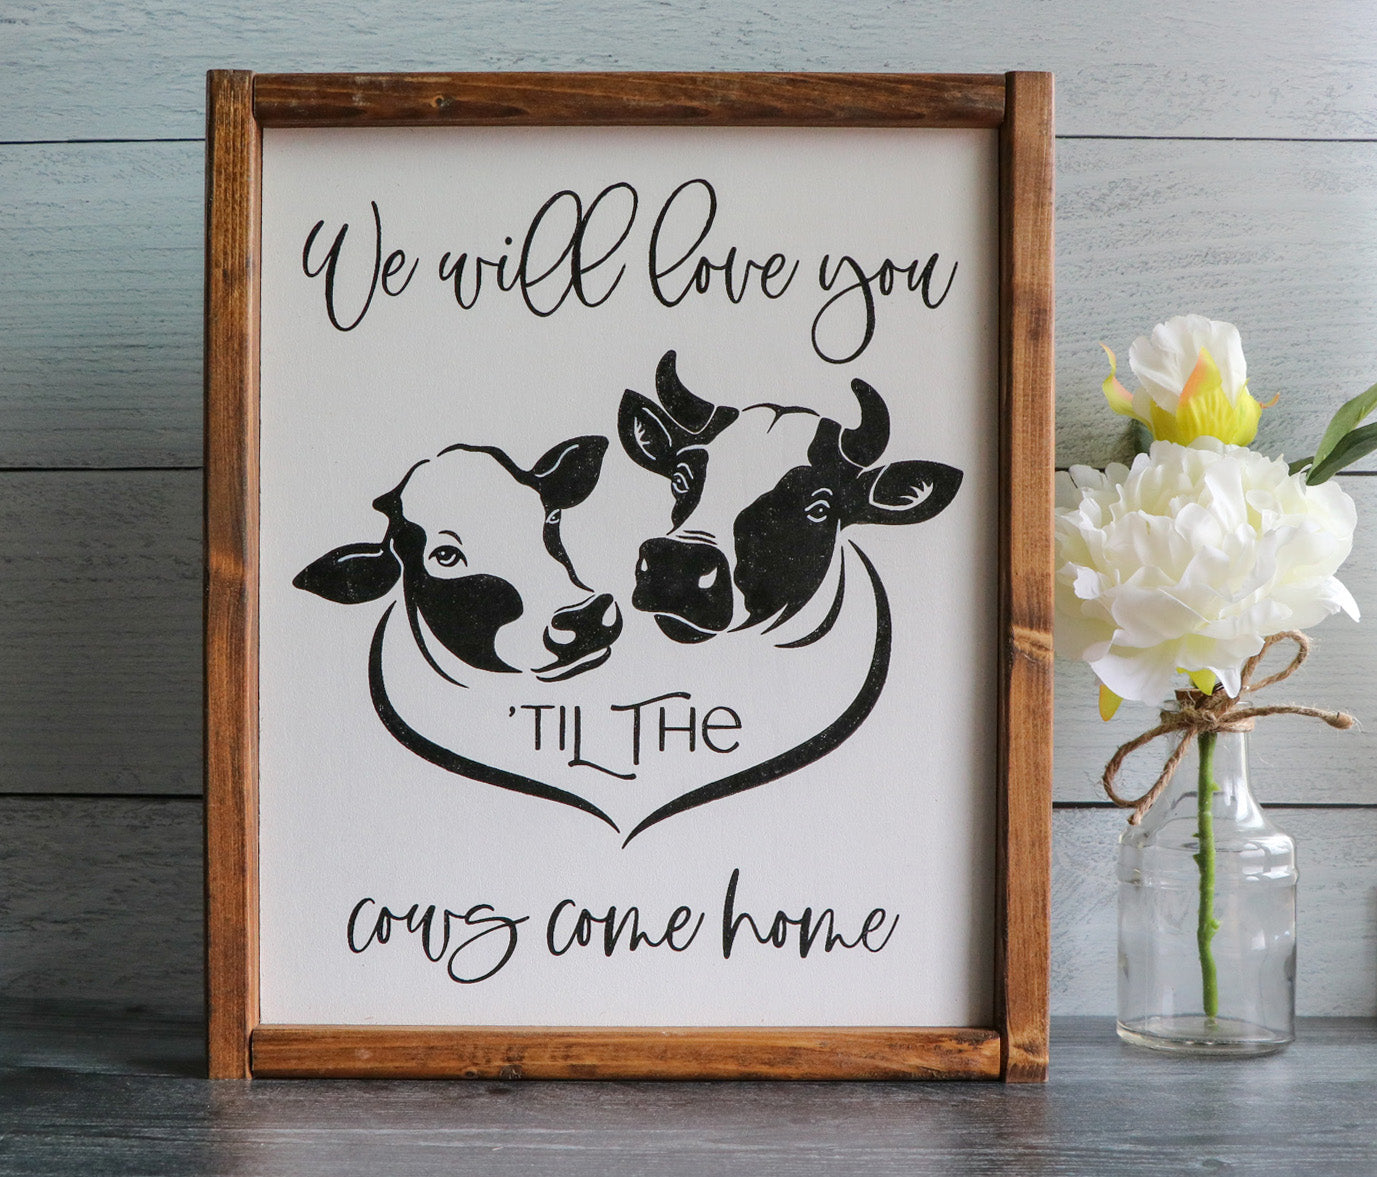 We Will Love You Til The Cows Come Home | Framed Wood Sign